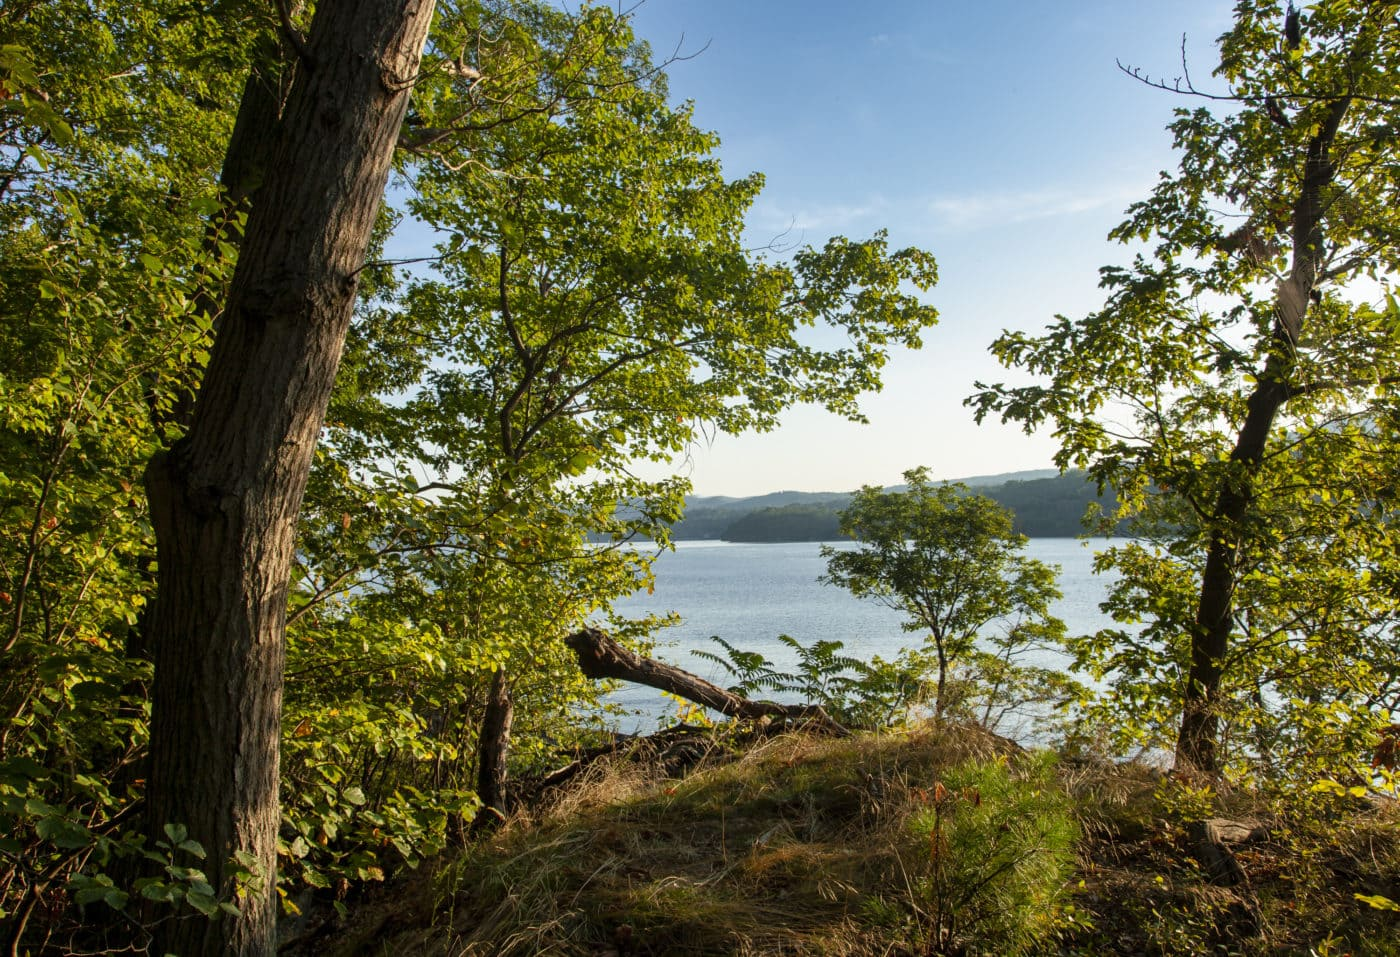 Scenic Hudson conserved land near West Point with views of the Hudson Highlands